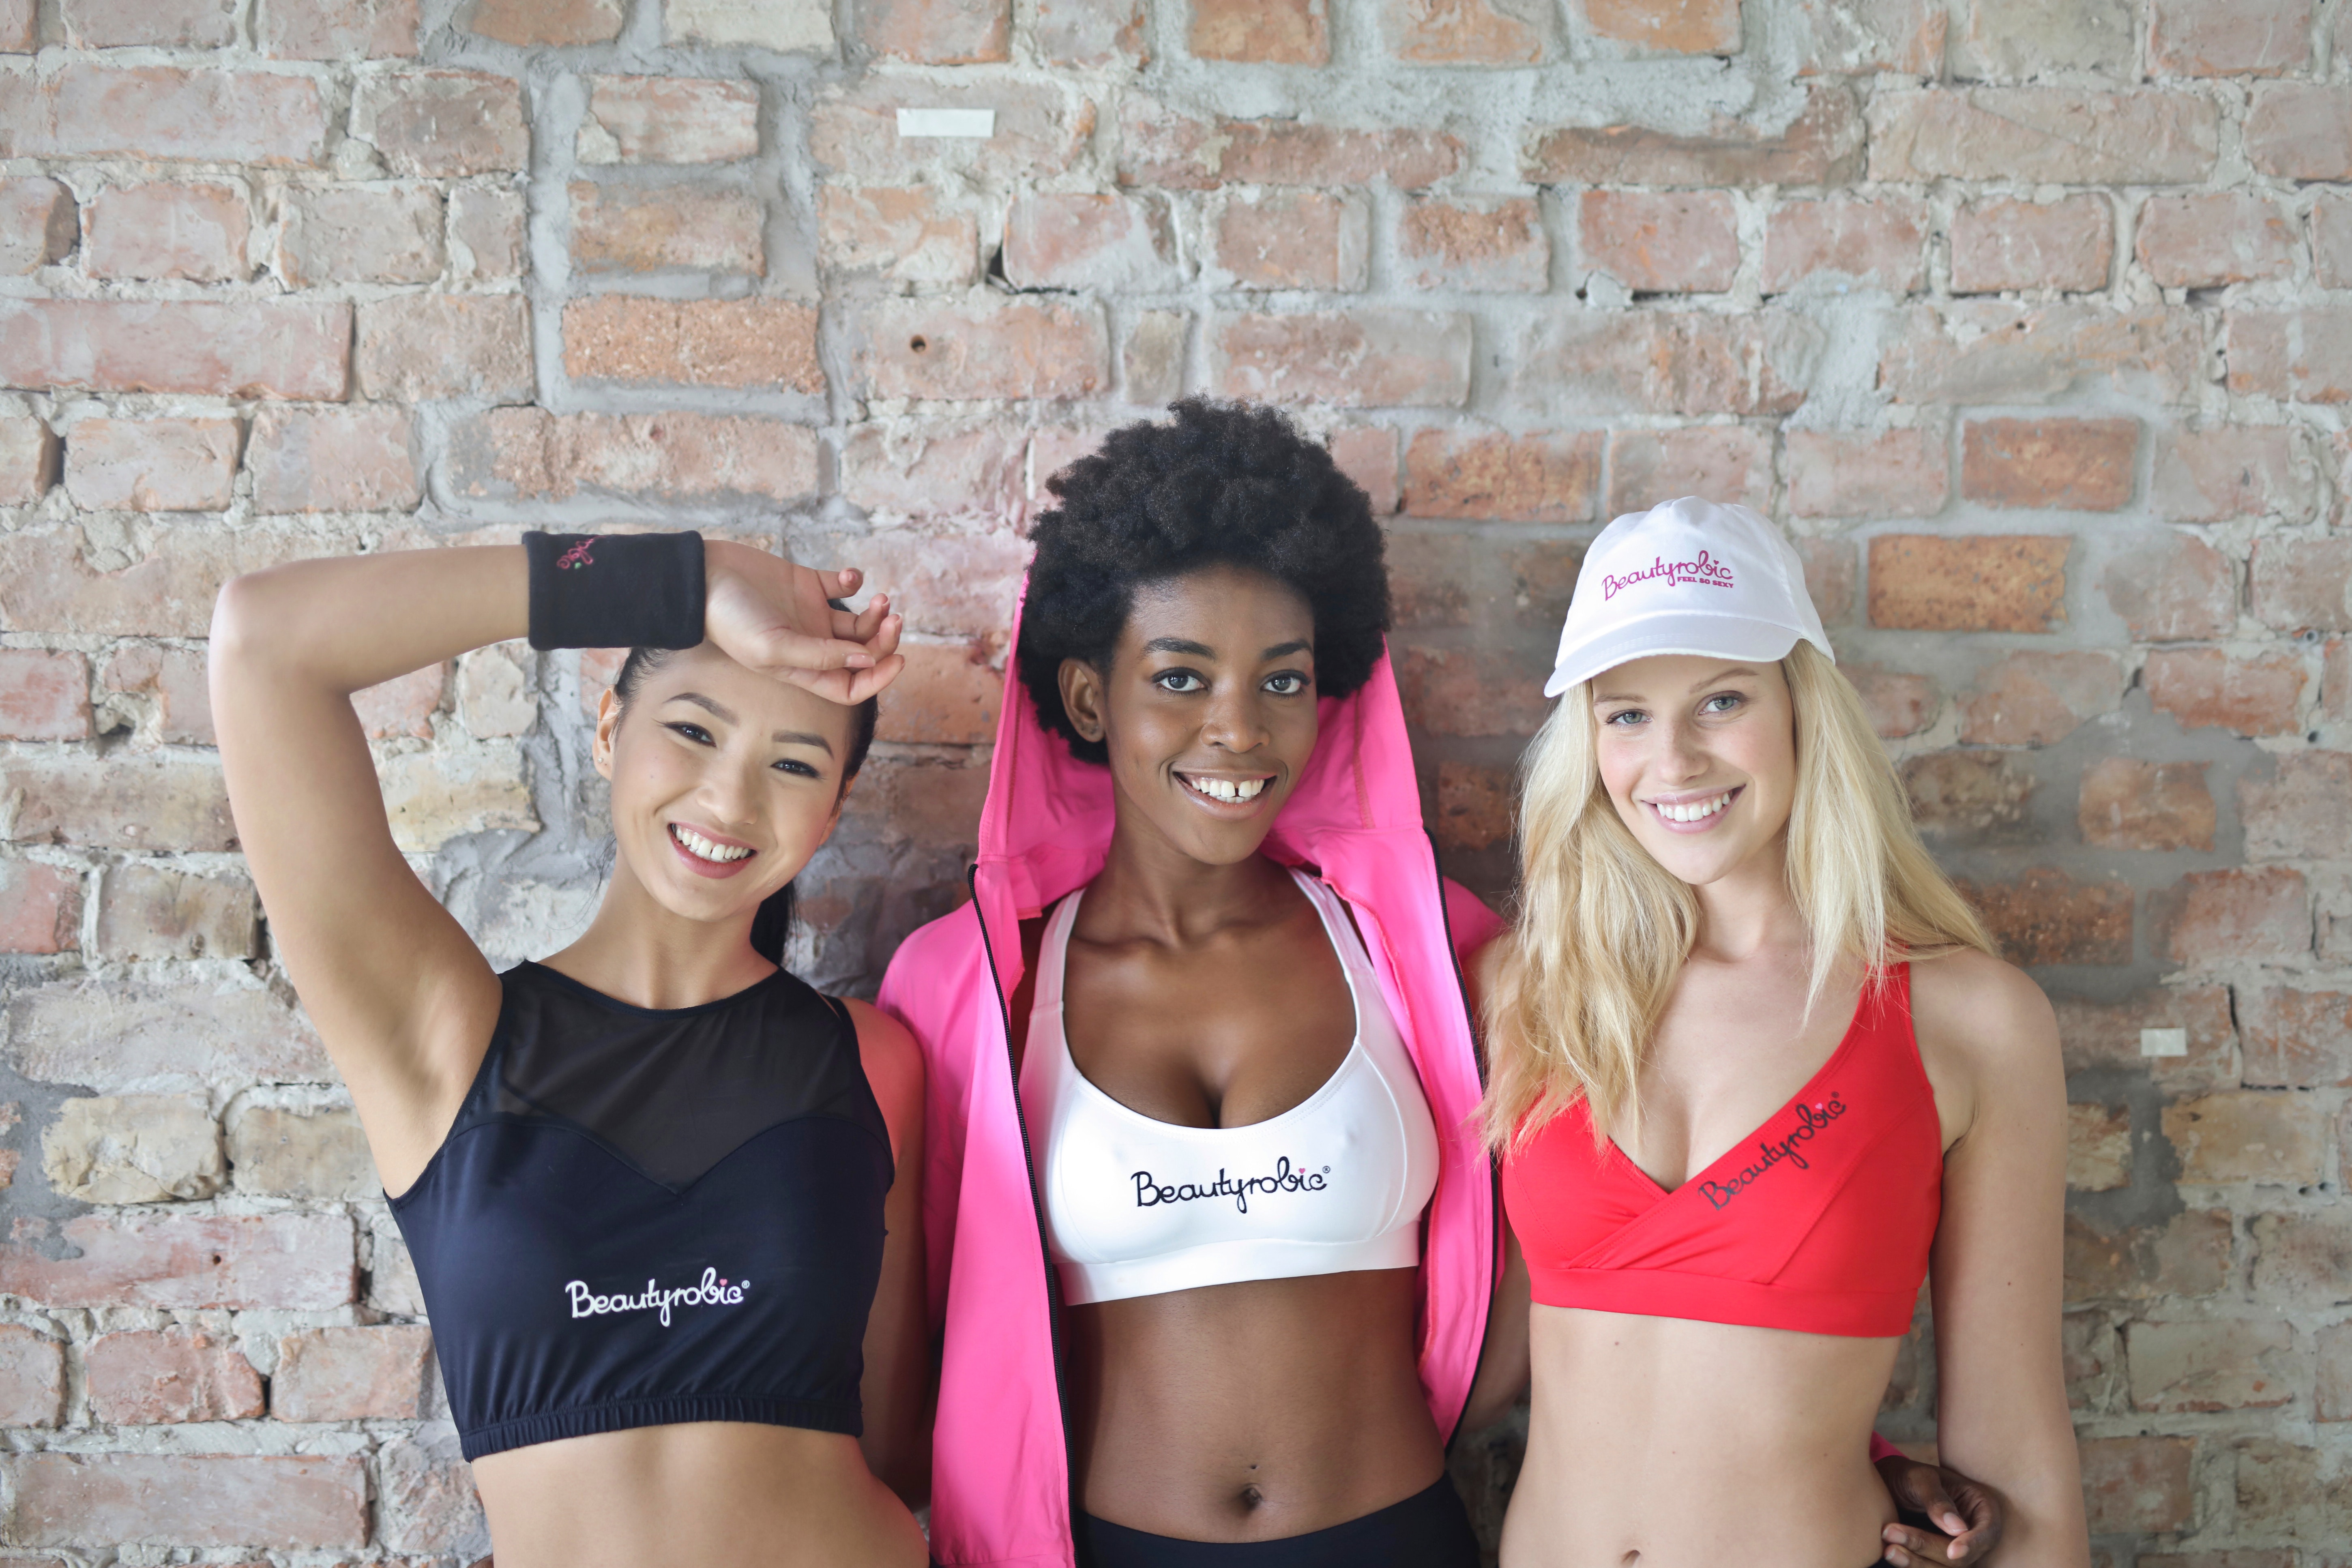 Three Women Wearing Sport Bra Standing Behind Concrete Wall, Background, Group, Wristband, Women, HQ Photo